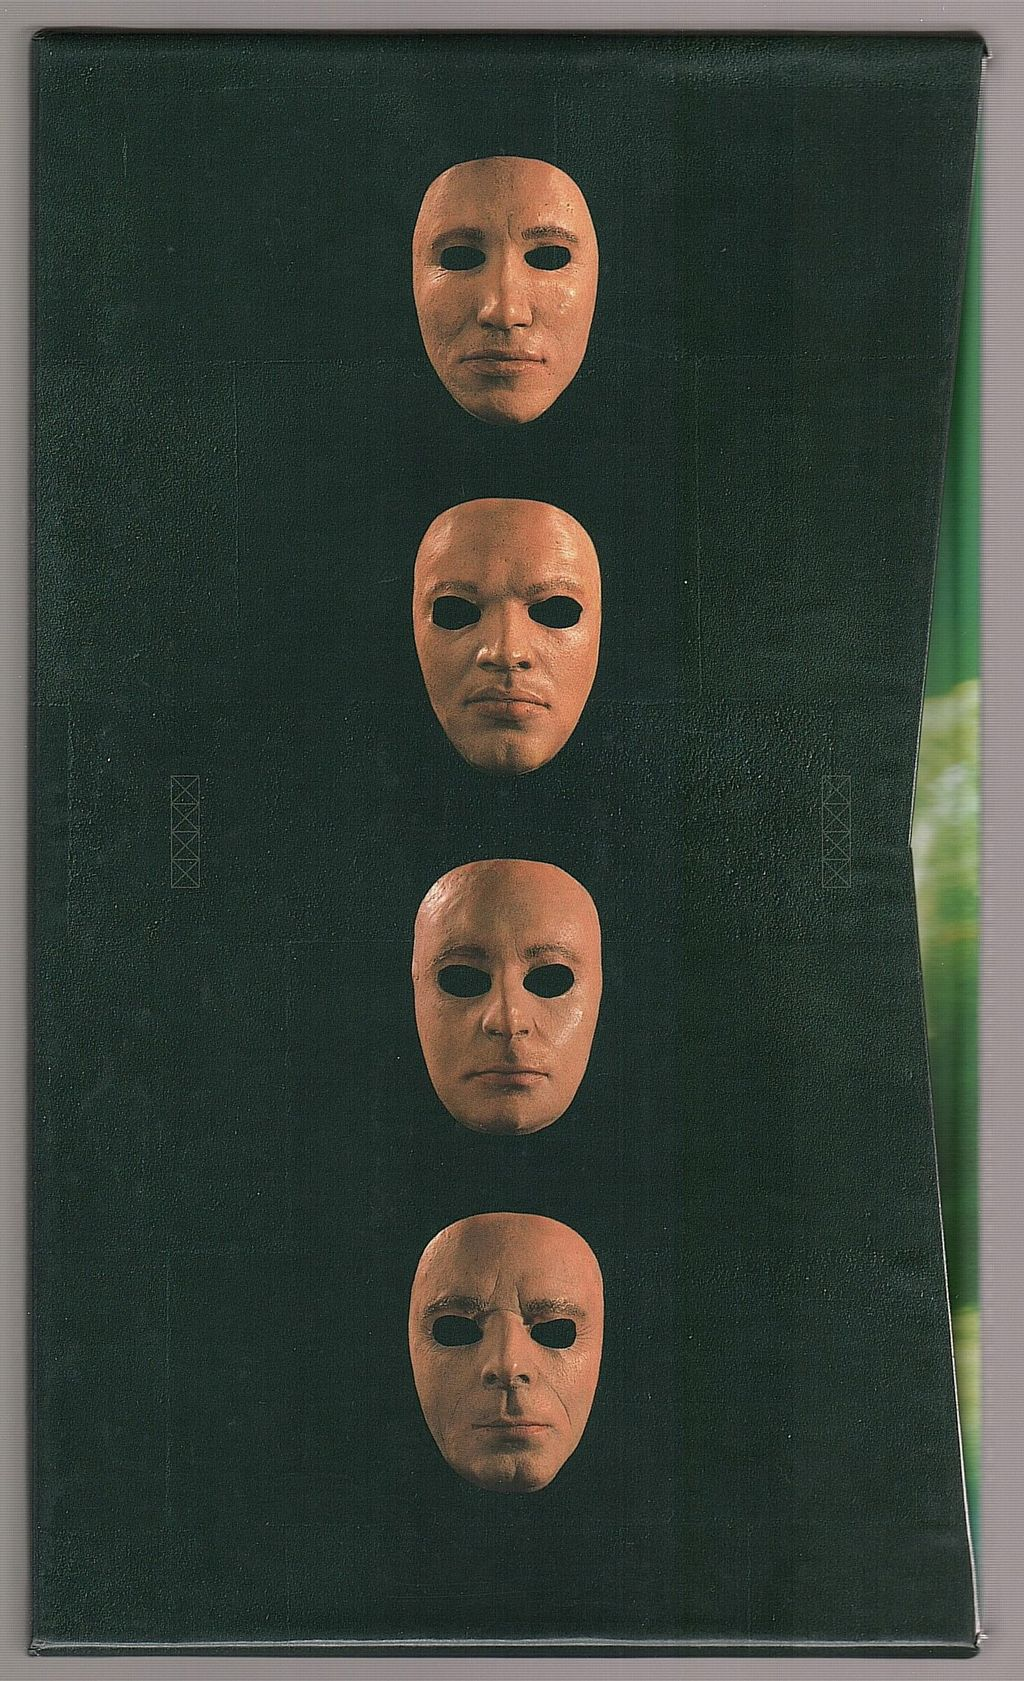 (Used) PINK FLOYD Is There Anybody Out There (The Wall Live 1980-81) (Deluxe Edition) 2CD.jpg